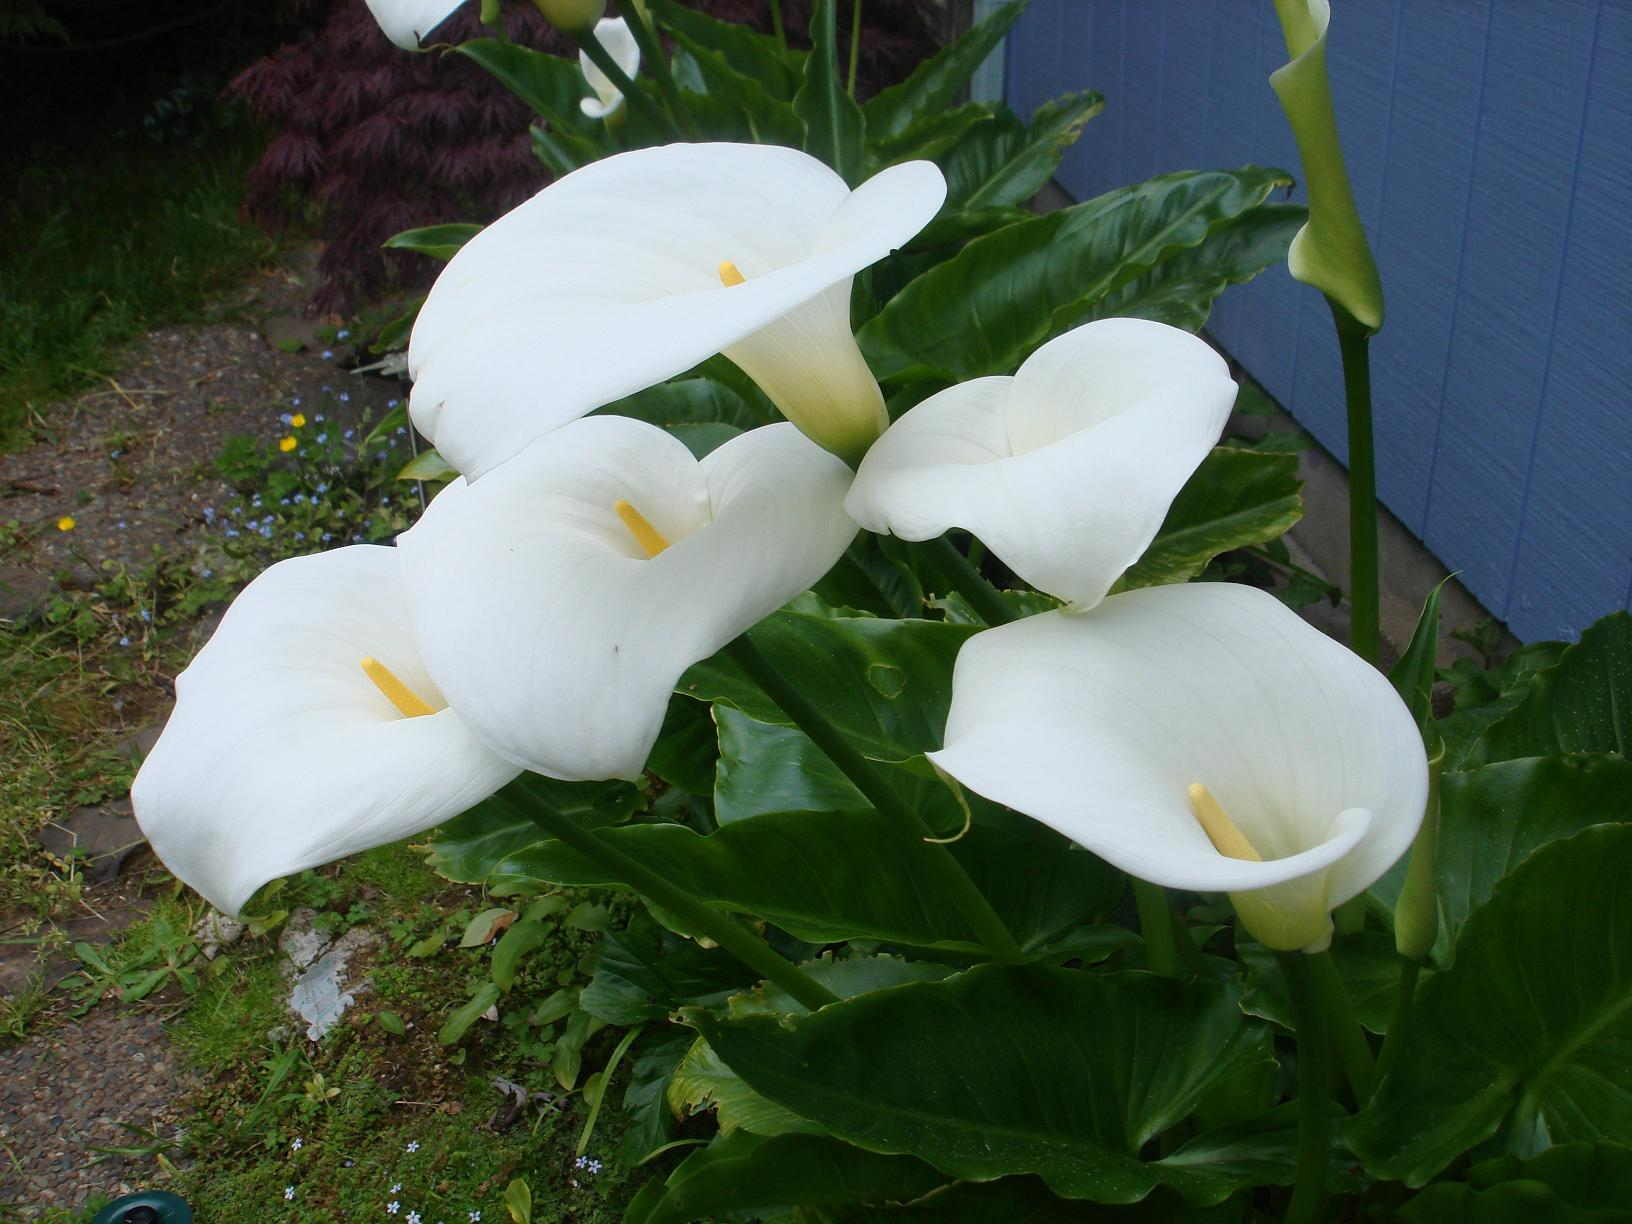 WallpaperMISC Calla Lilies HD Wallpapers Free TOP High Quality